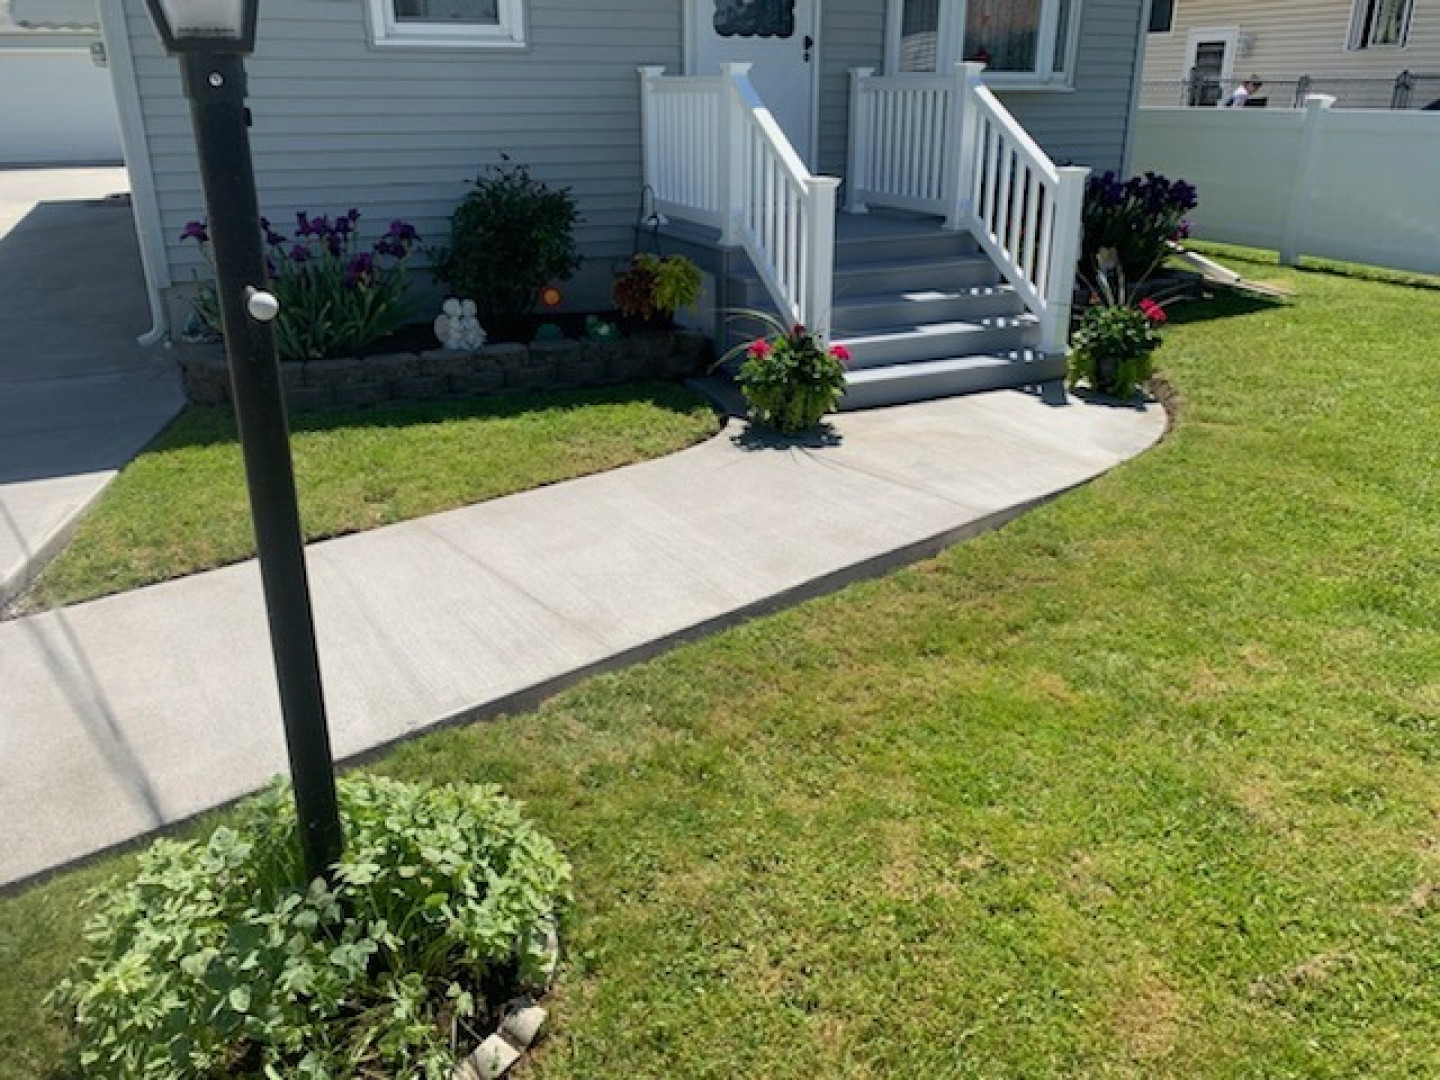 Choose Us For Concrete Driveway Repair And More In Depew, Williamsville, NY and surrounding areas